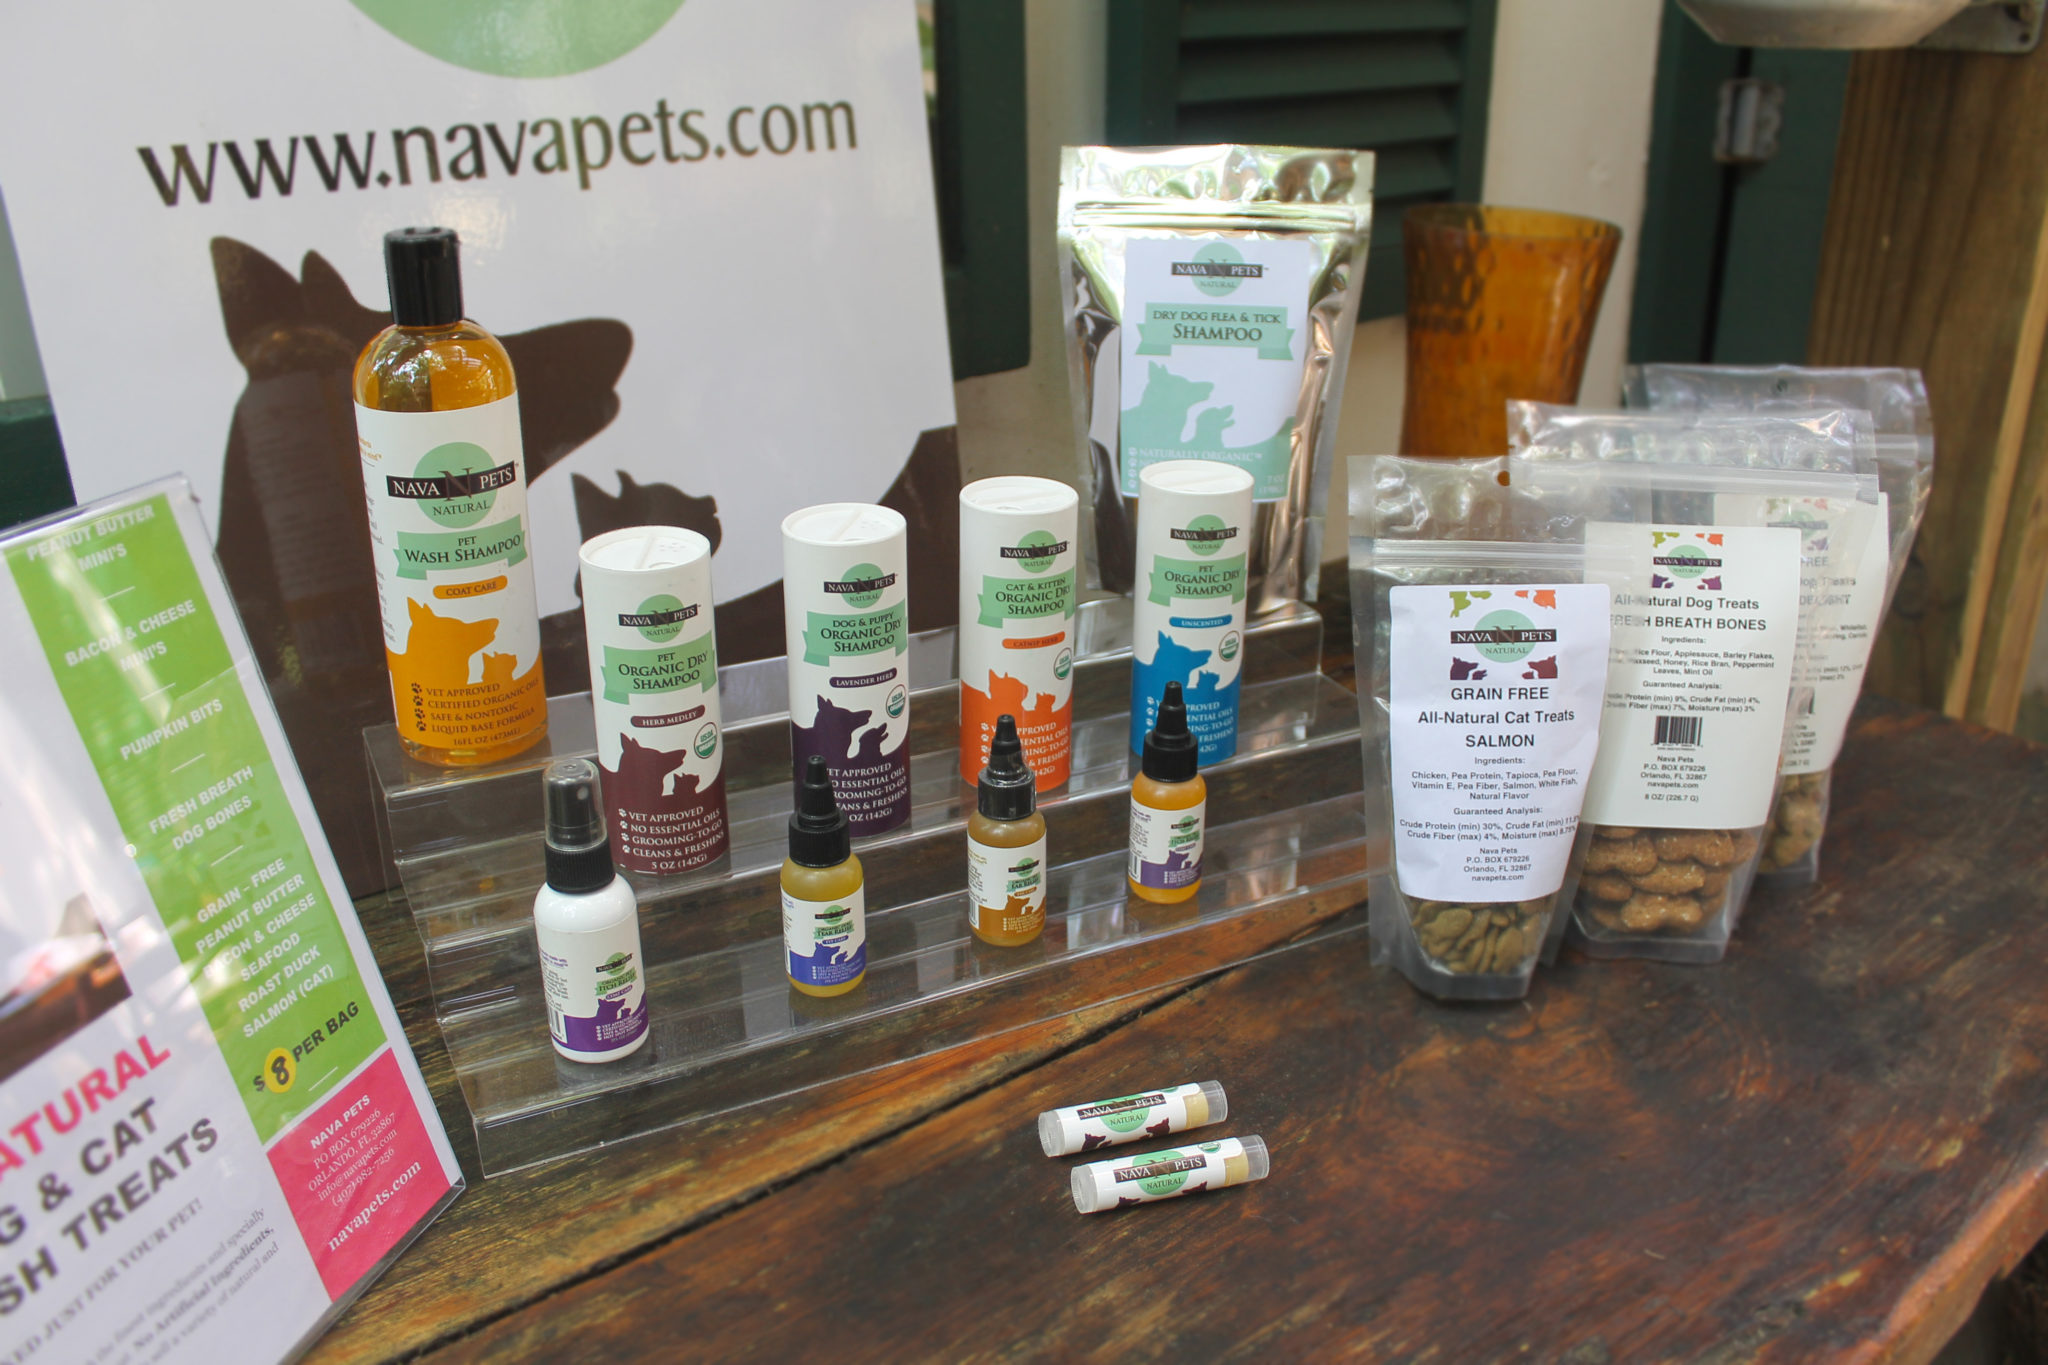 Organic pet care founder, Nava Pet products